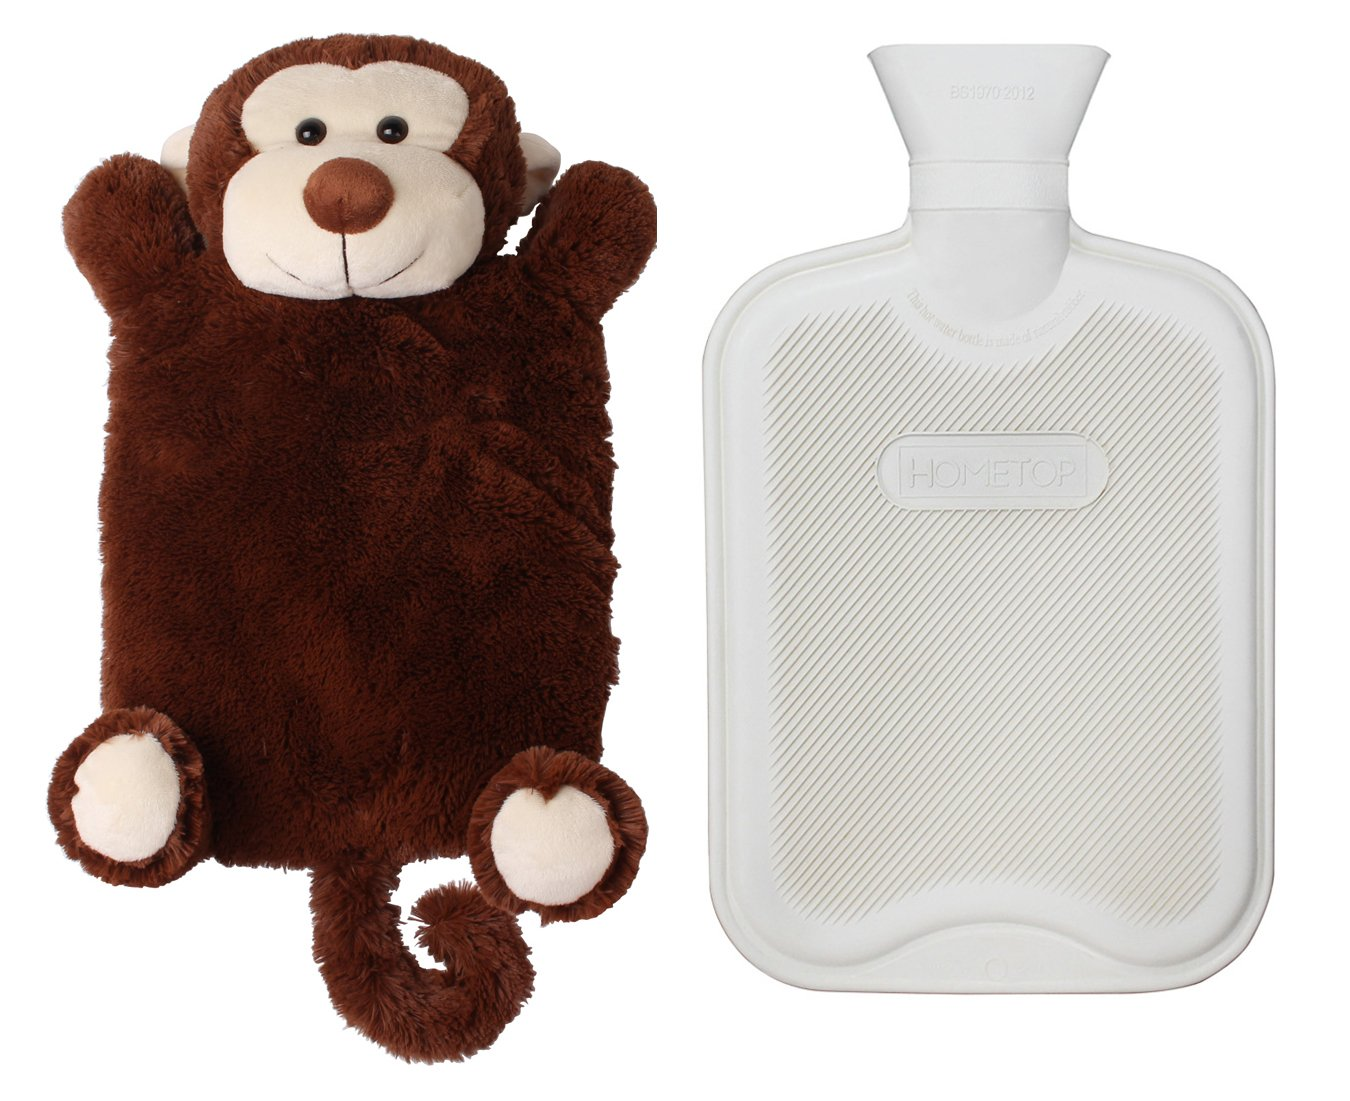 HomeTop Premium Classic Rubber Hot or Cold Water Bottle with Cute Stuffed Animal Cover (2 Liters, Brown Monkey) by HomeTop